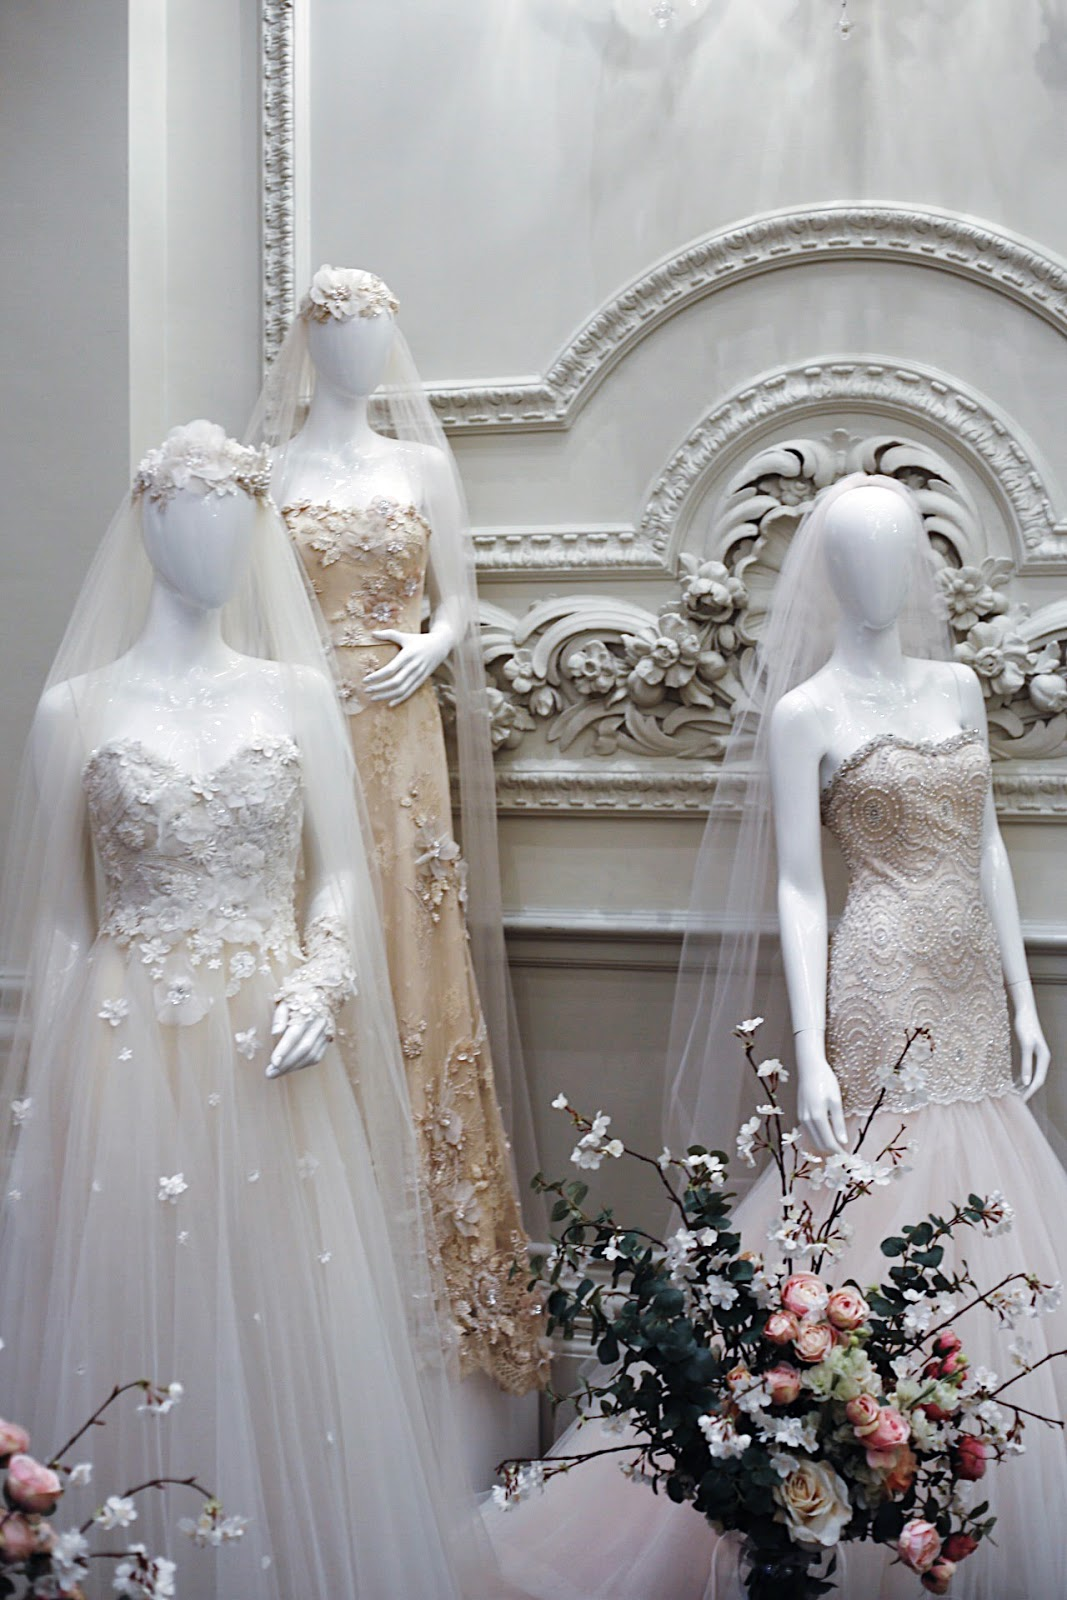 wedding atelier, wedding show london, the quintessentially wedding atelier, quintessentially events, quintessential, london based fashion blogger, london based style blogger,